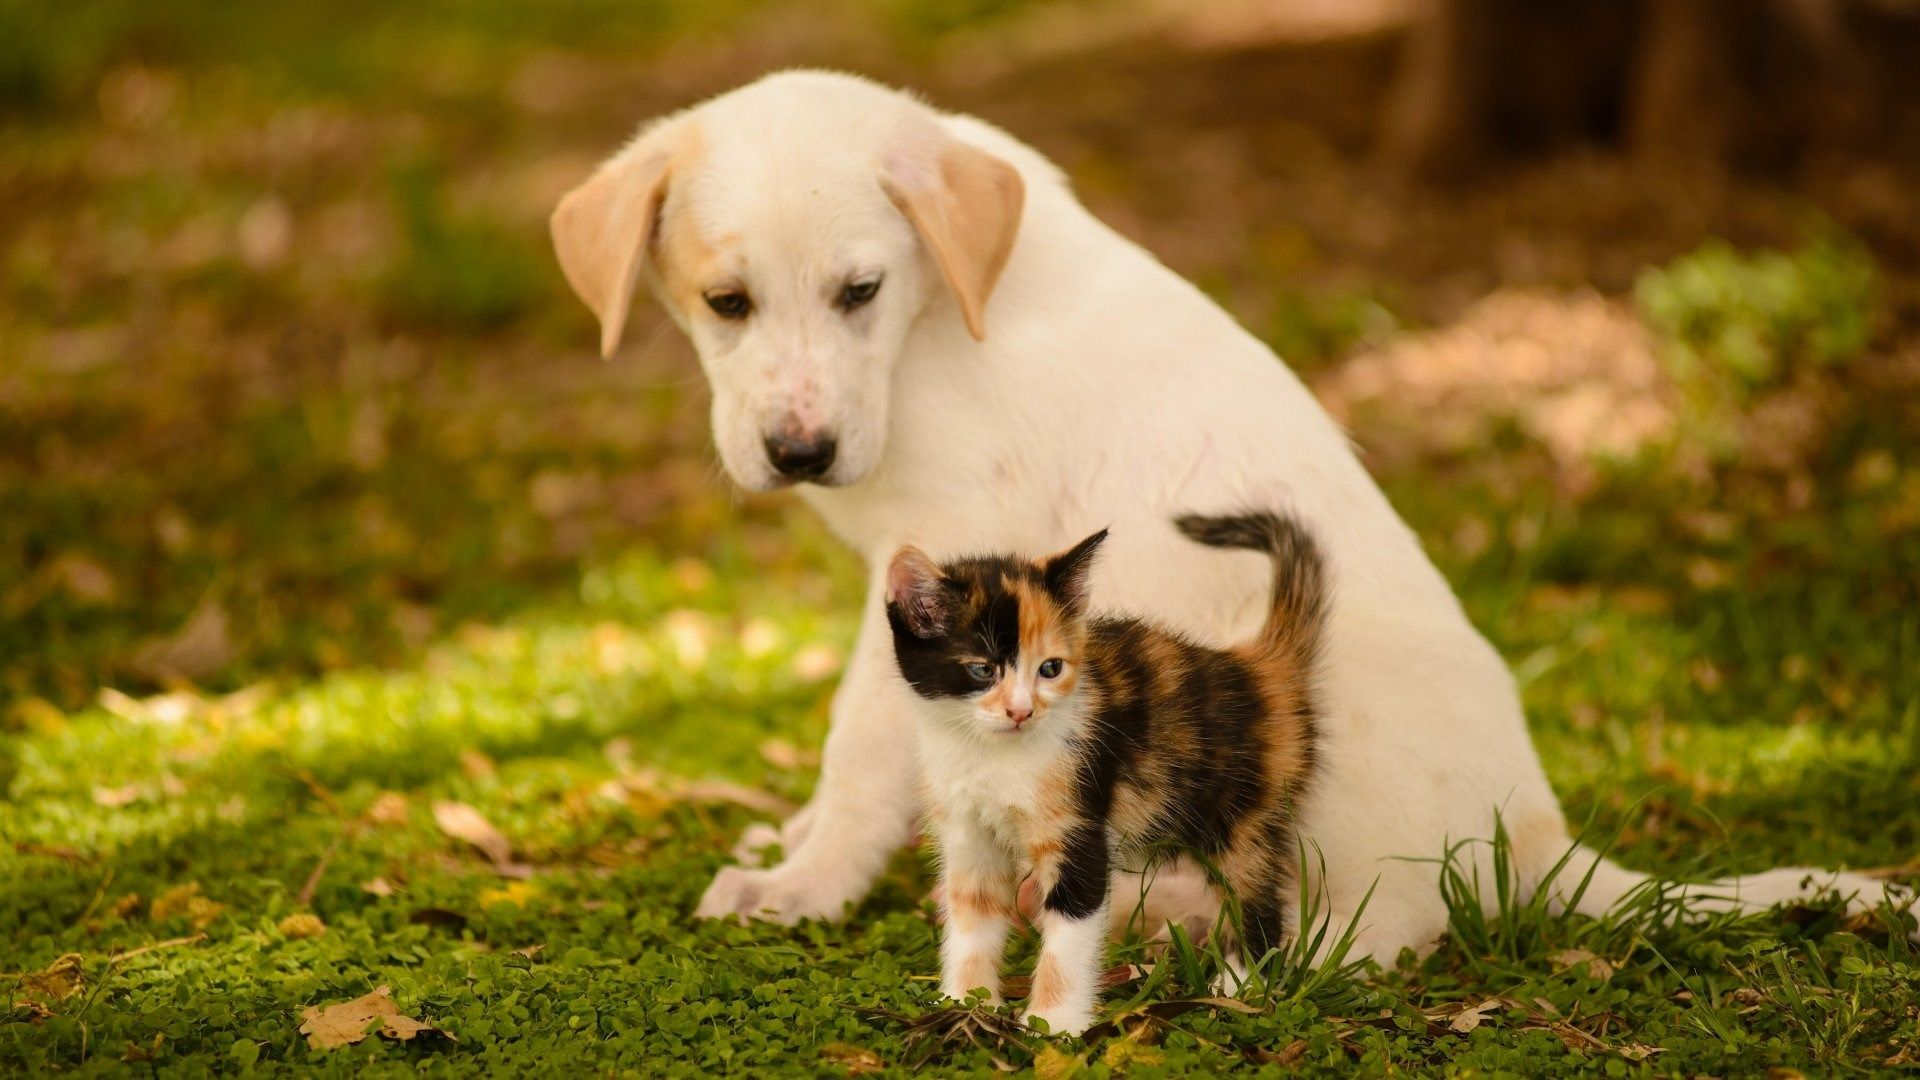 Dog Cat Kitten Friends Baby Wallpaper Hd Kittens And Puppies Cute Puppy Wallpaper Cute Cats And Dogs